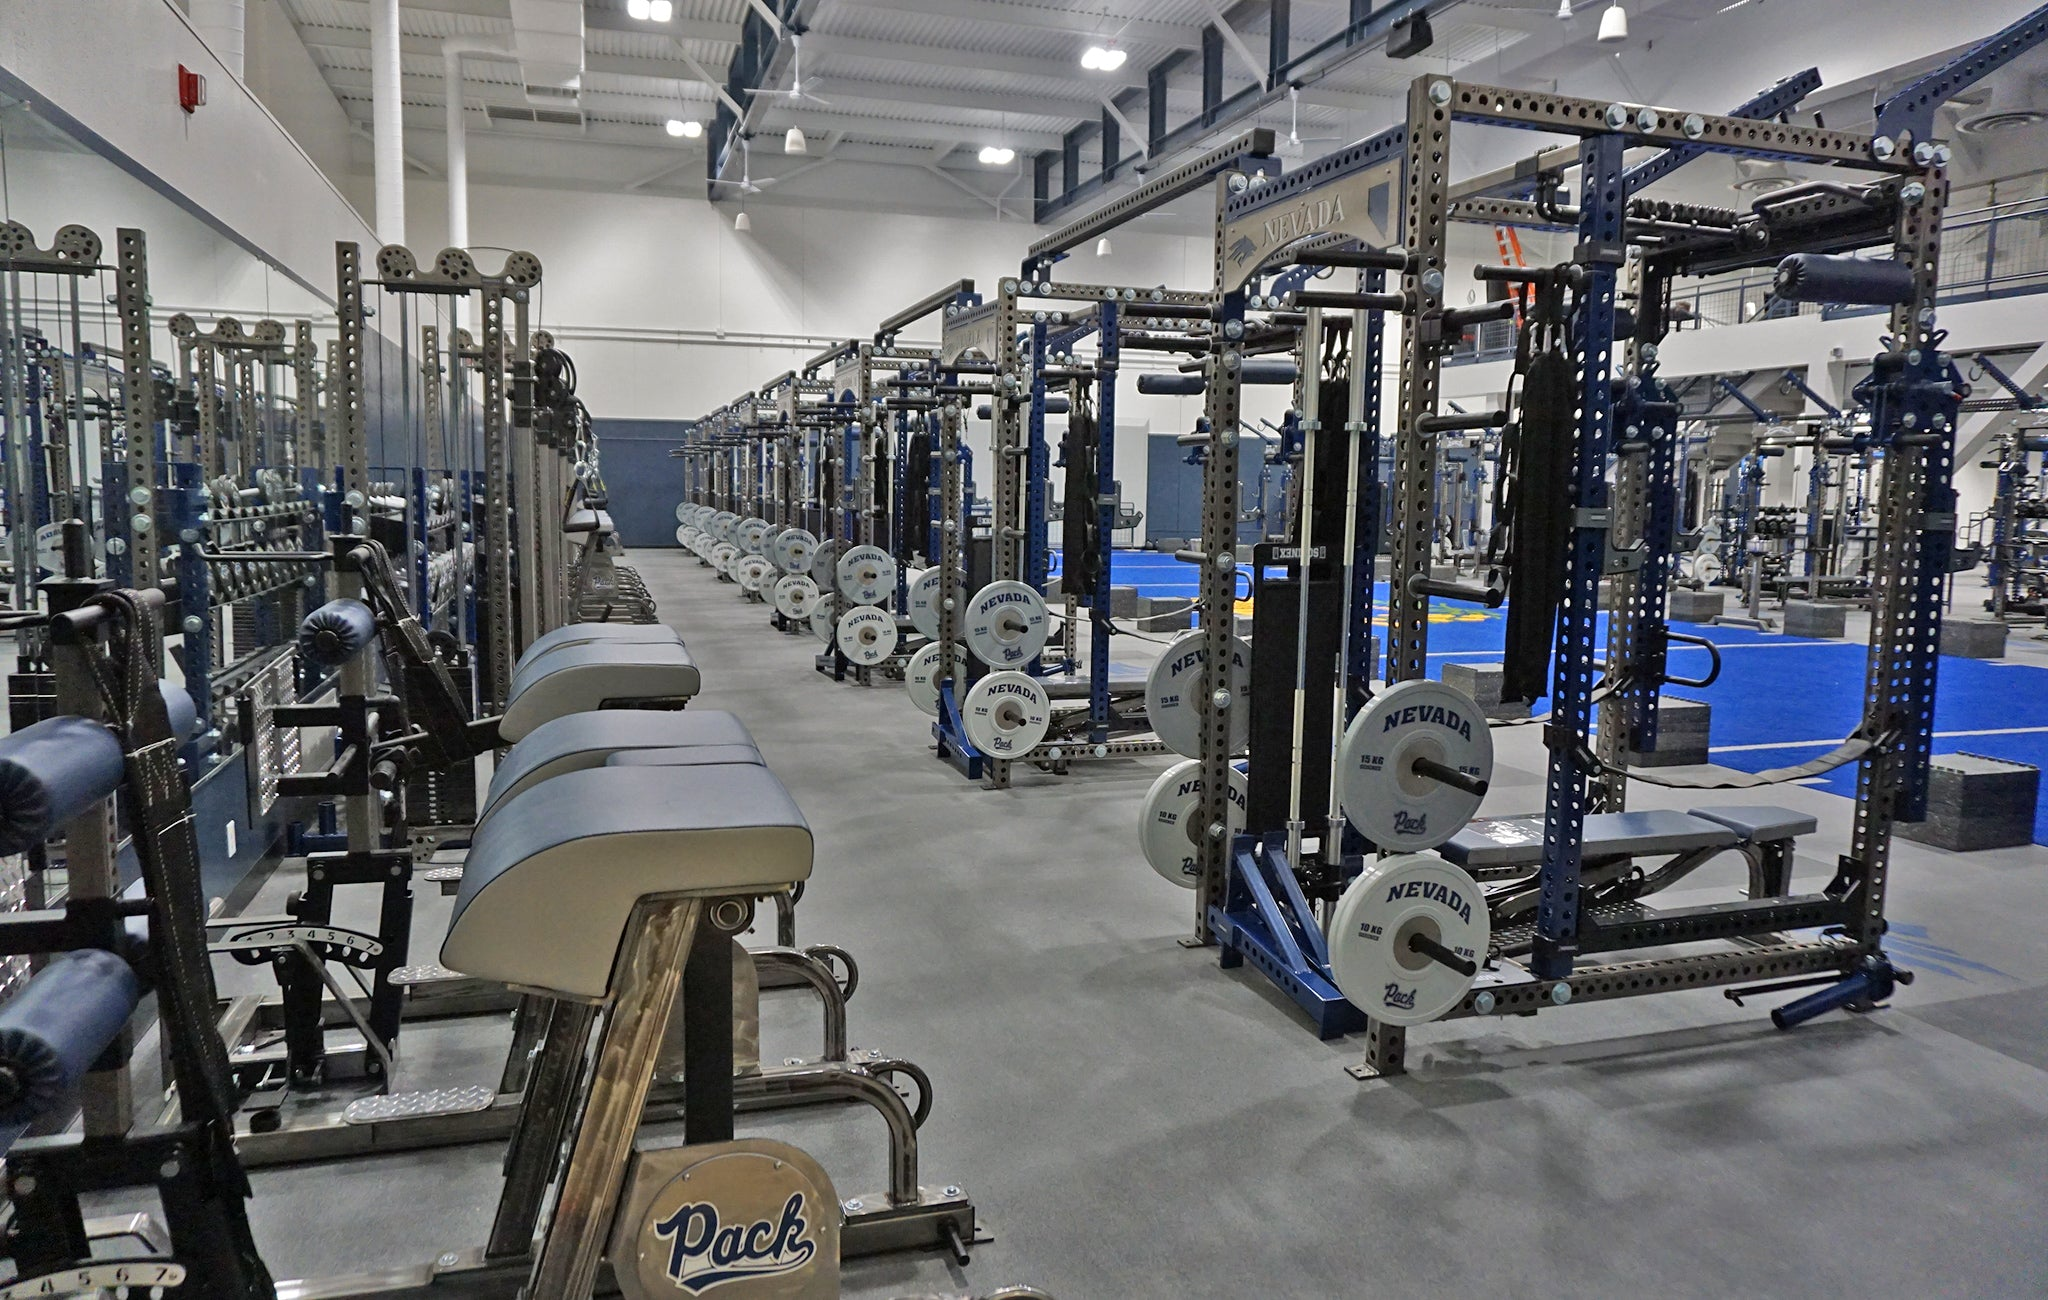 University of Nevada athletics